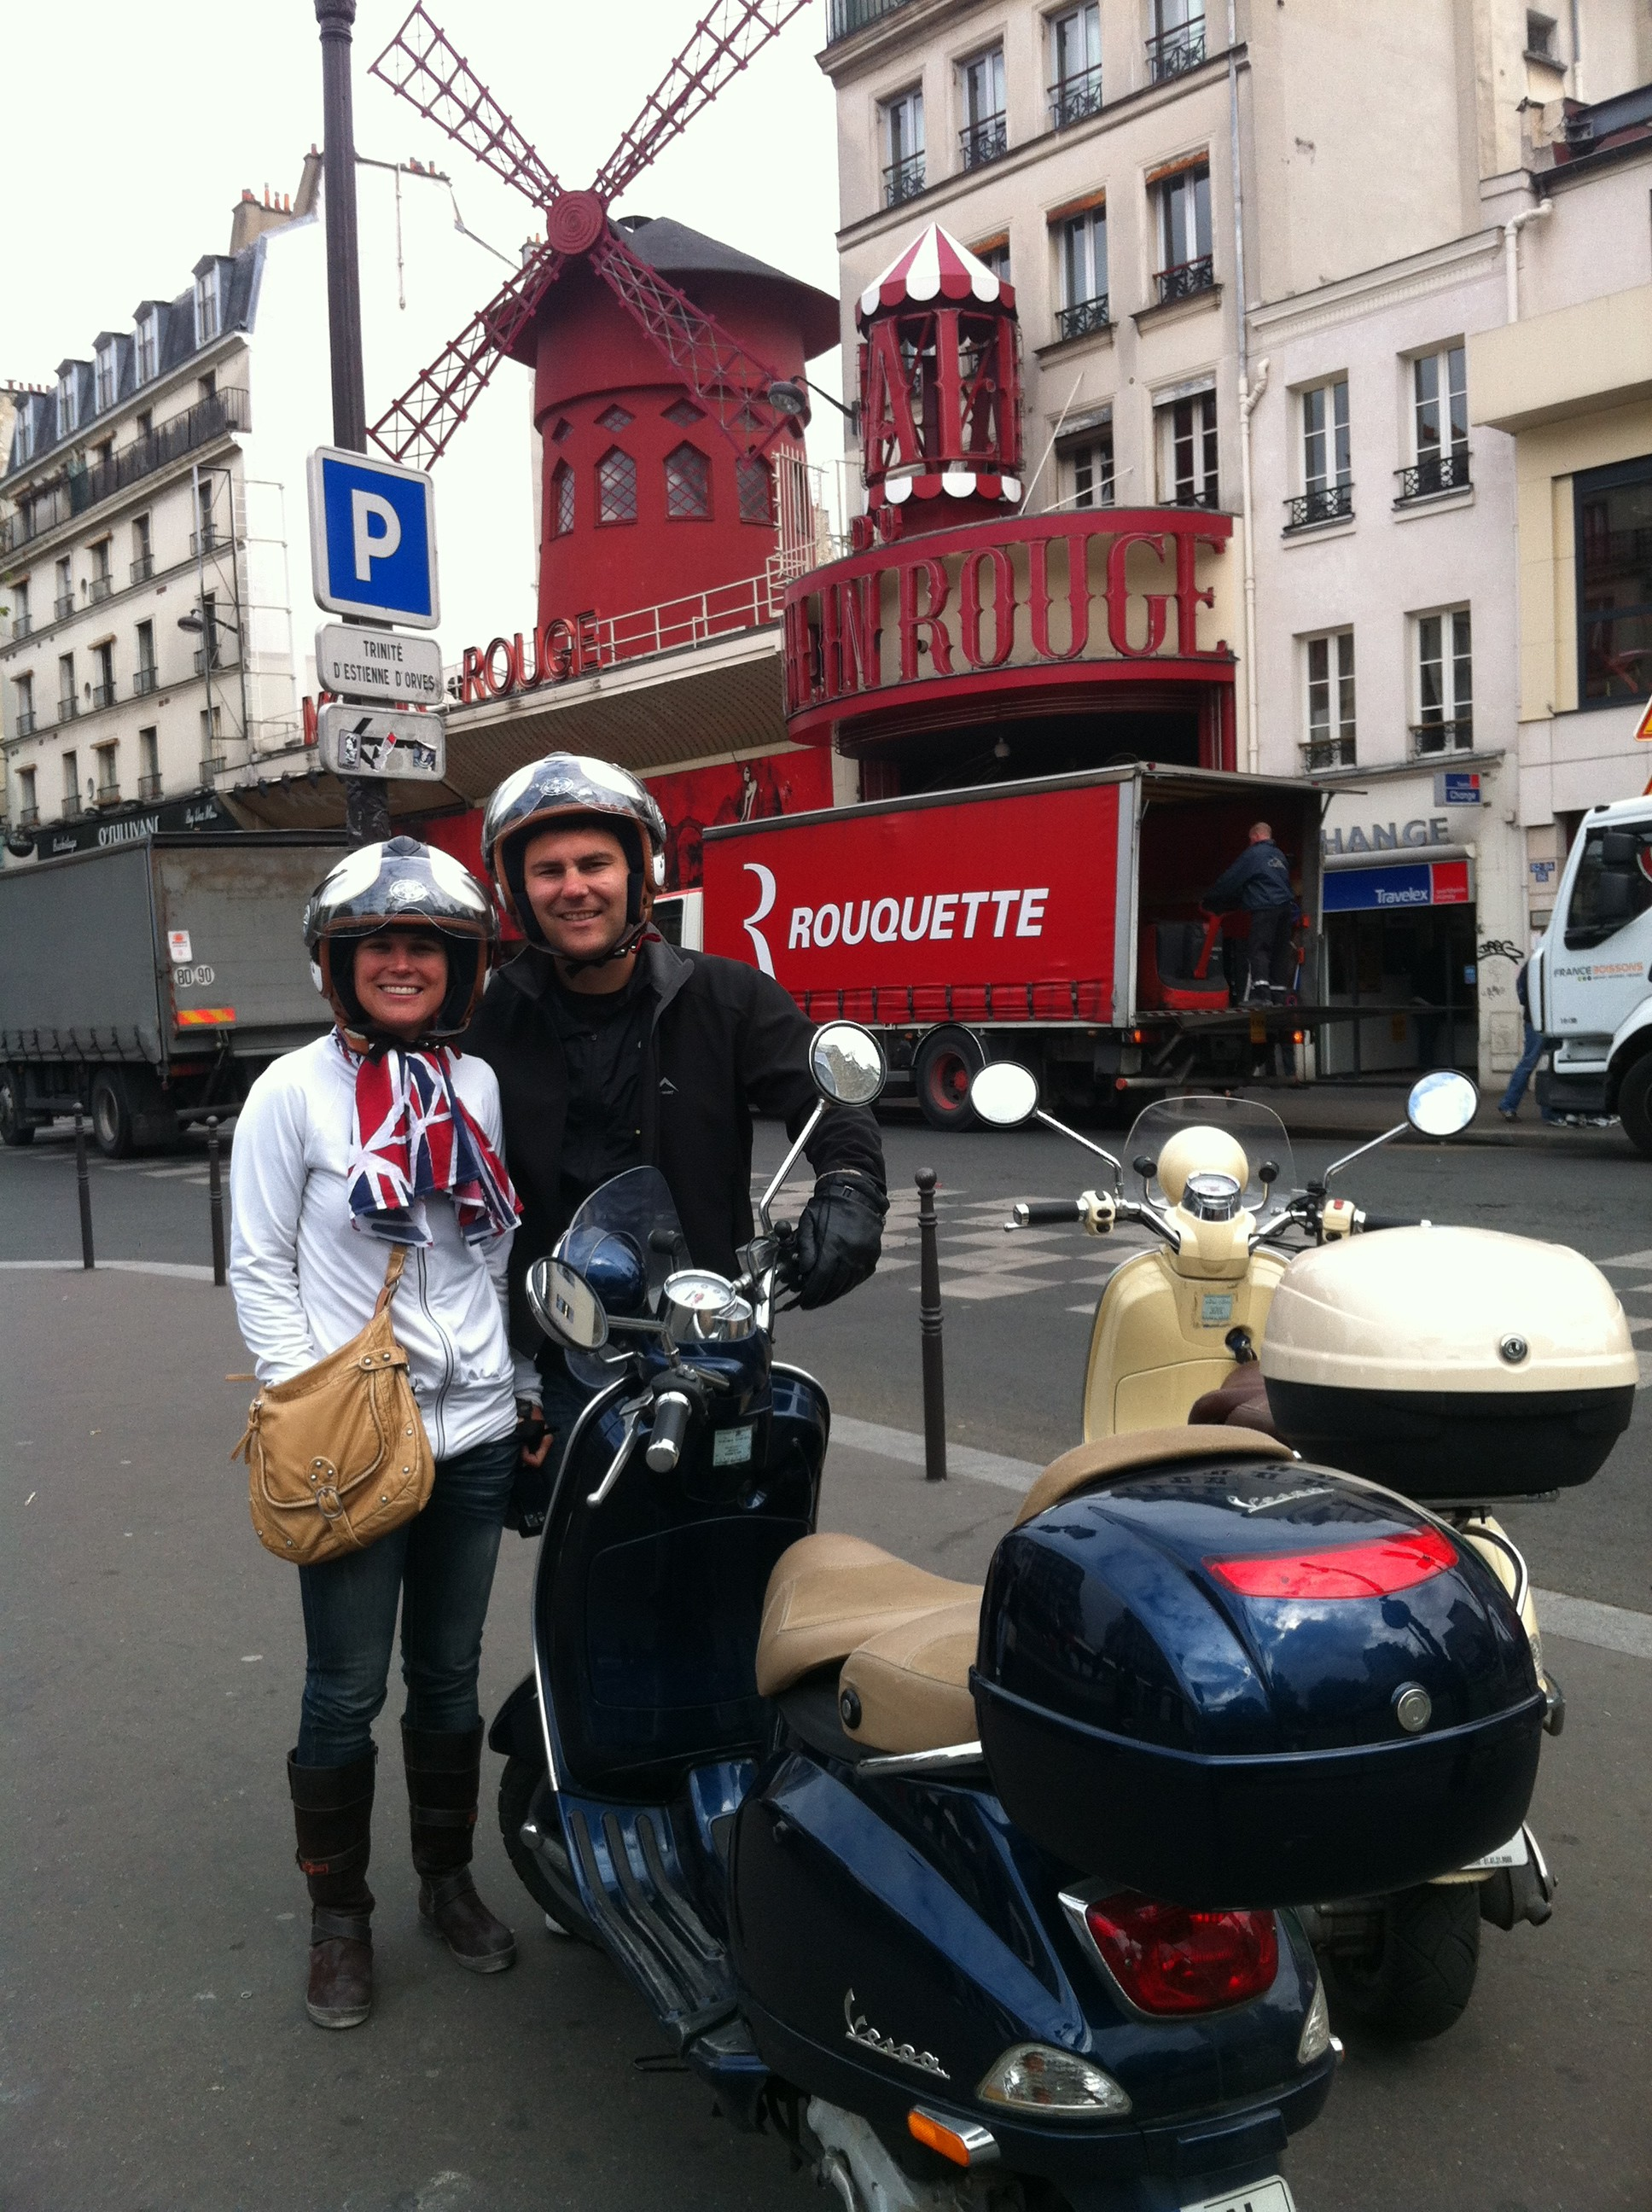 Moulin Rouge Paris by vespa scooter with Andre and his wife during a paris sightseeing tour.